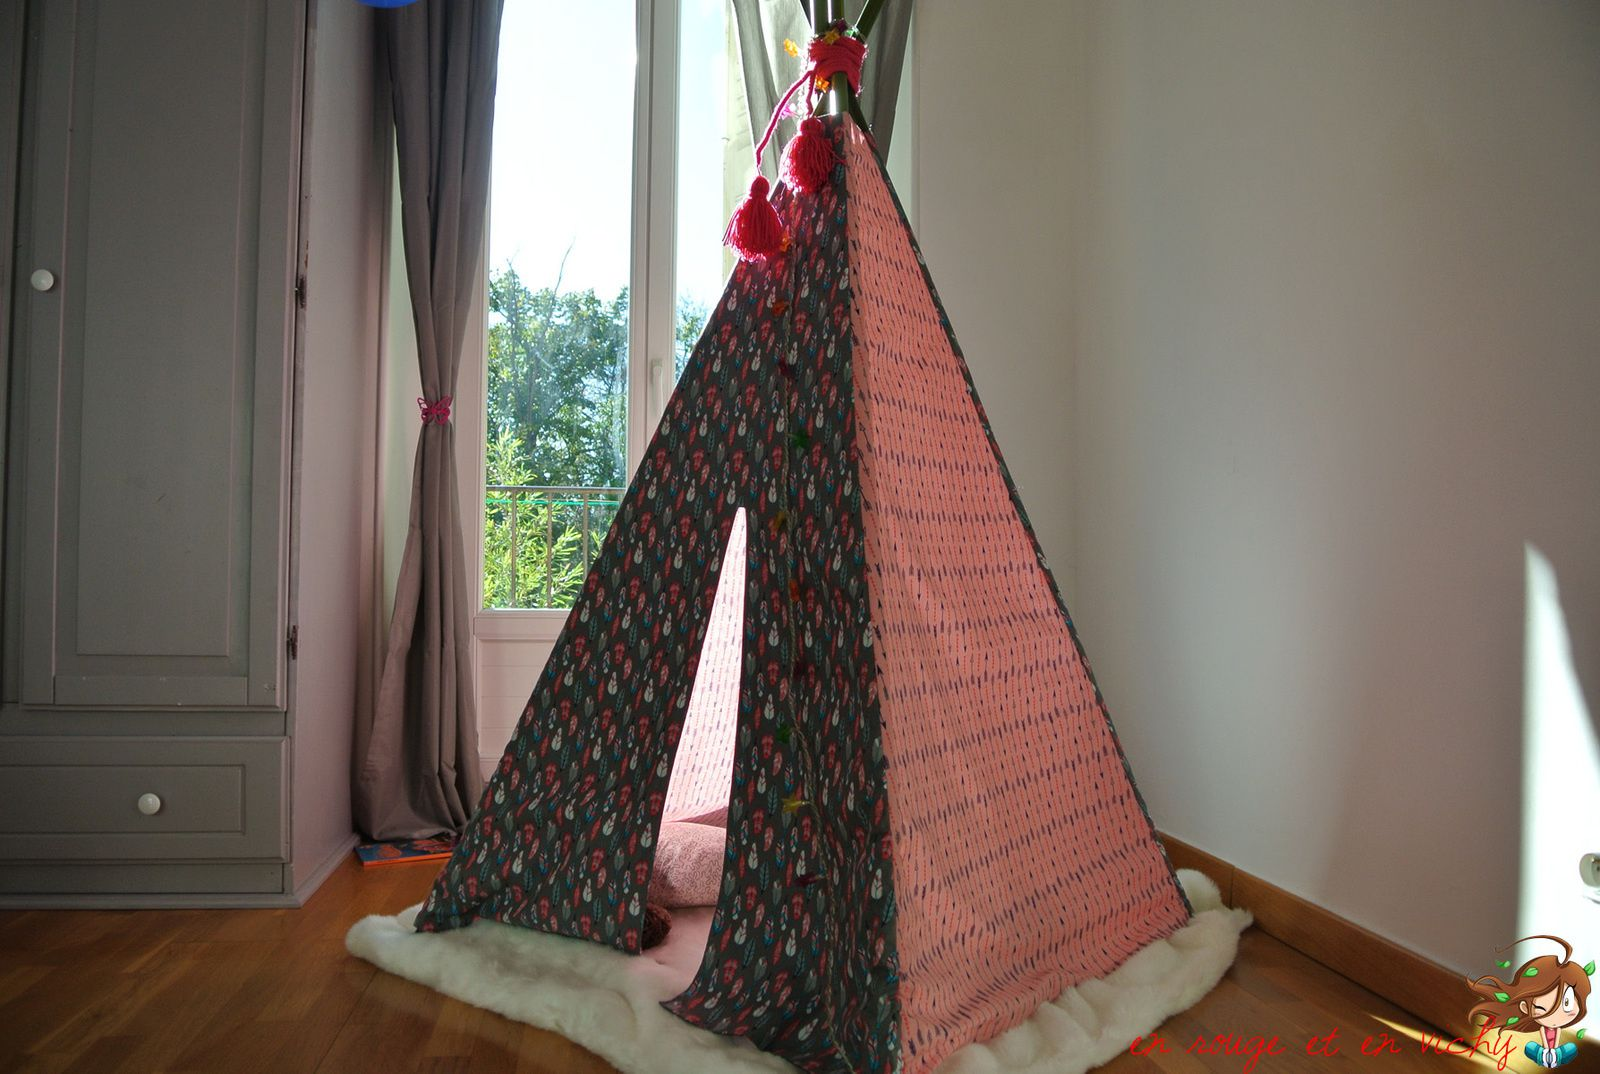 d co chambre 2 le tipi d 39 indienne en rouge et en vichy. Black Bedroom Furniture Sets. Home Design Ideas